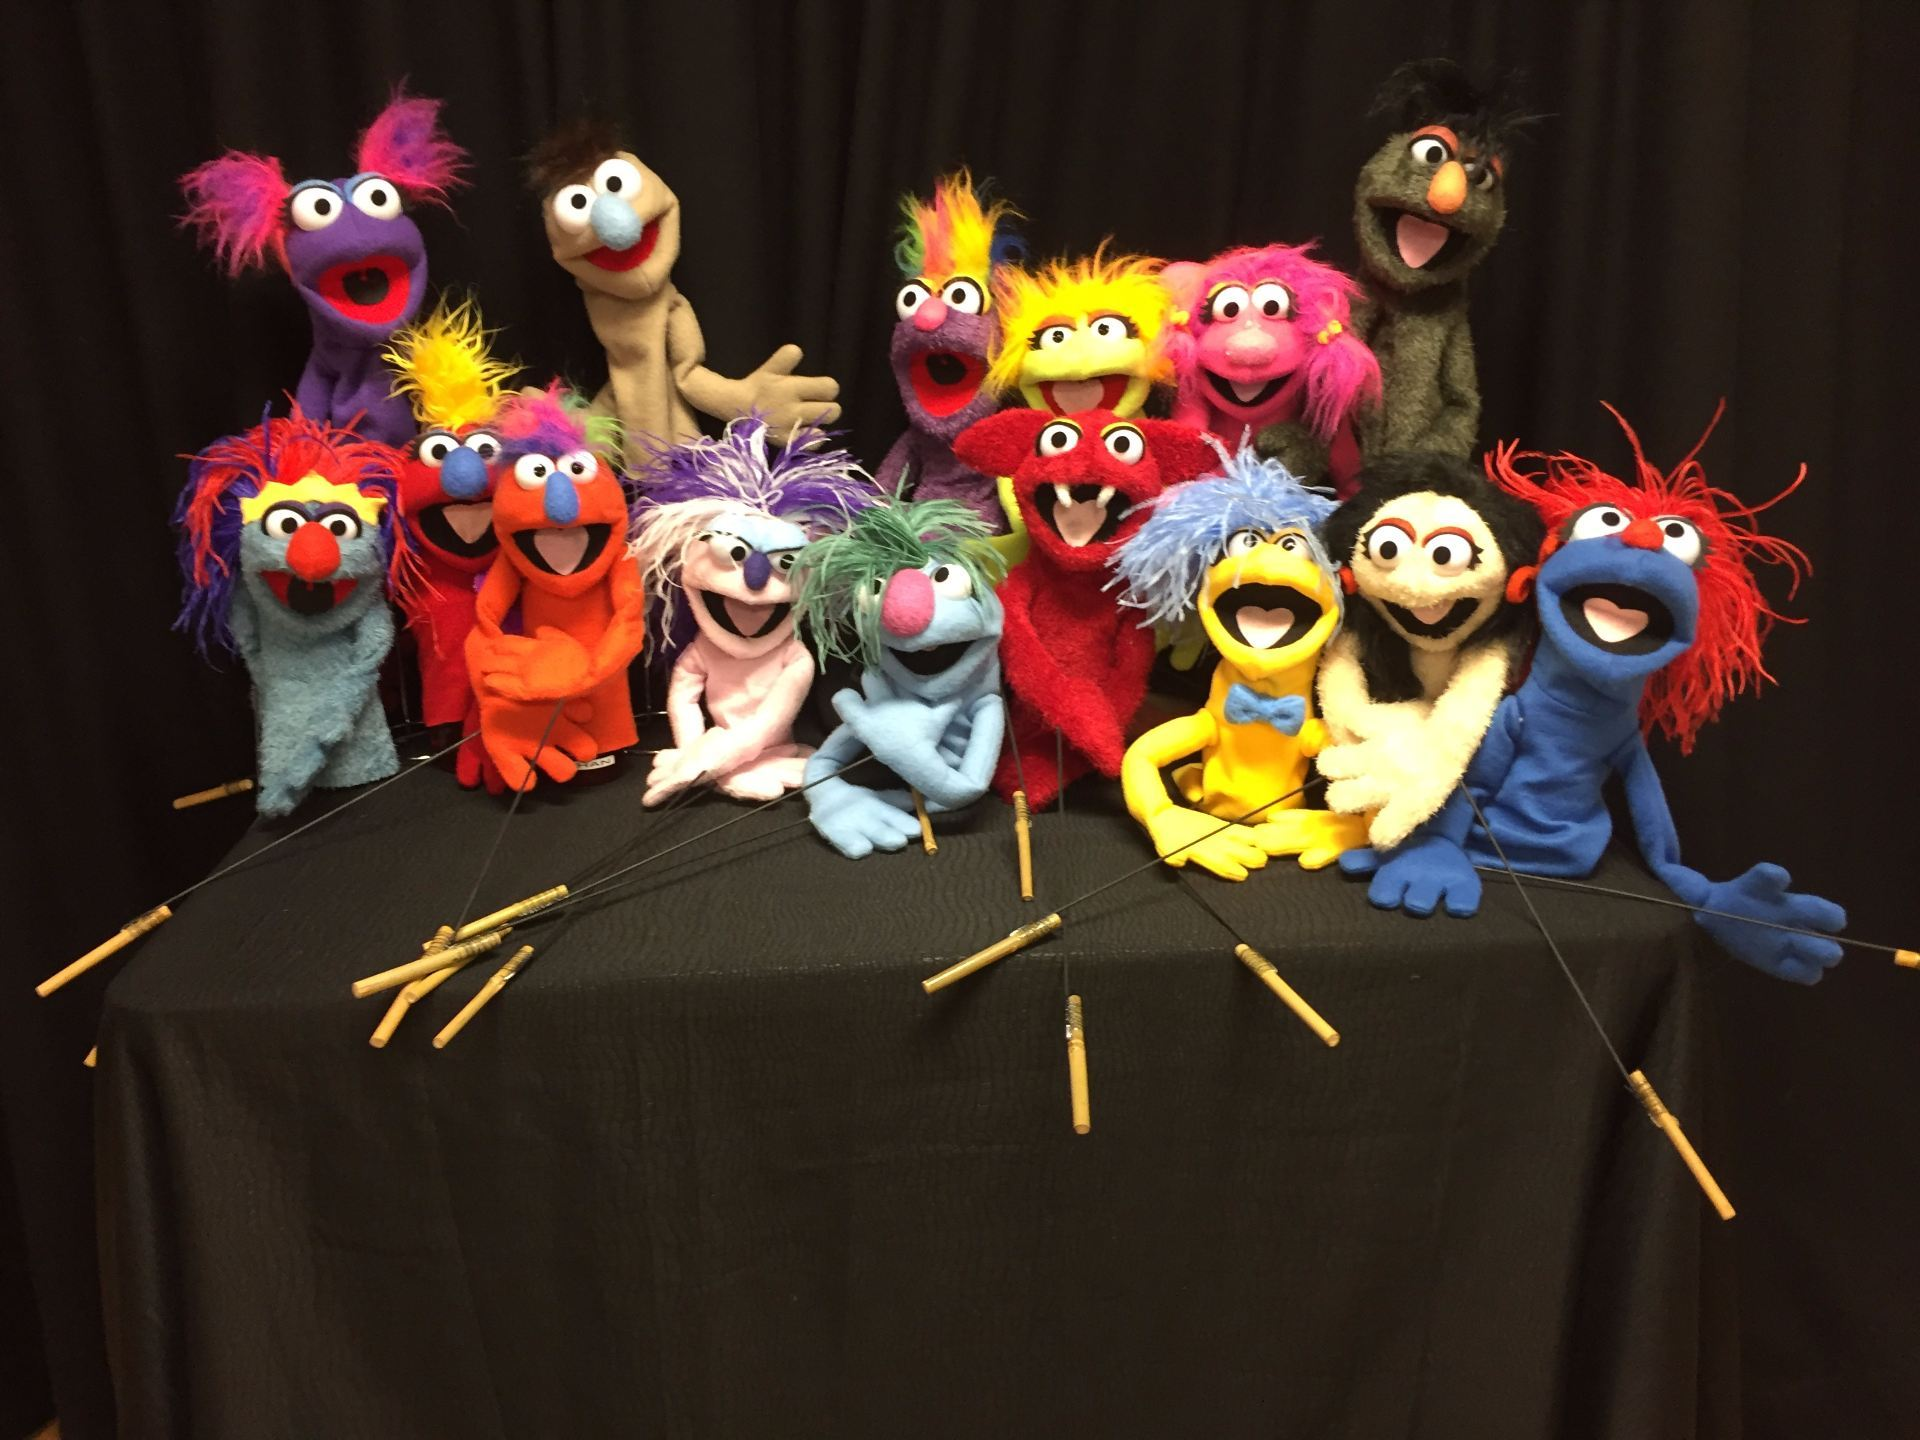 The finished puppets made by the participants.